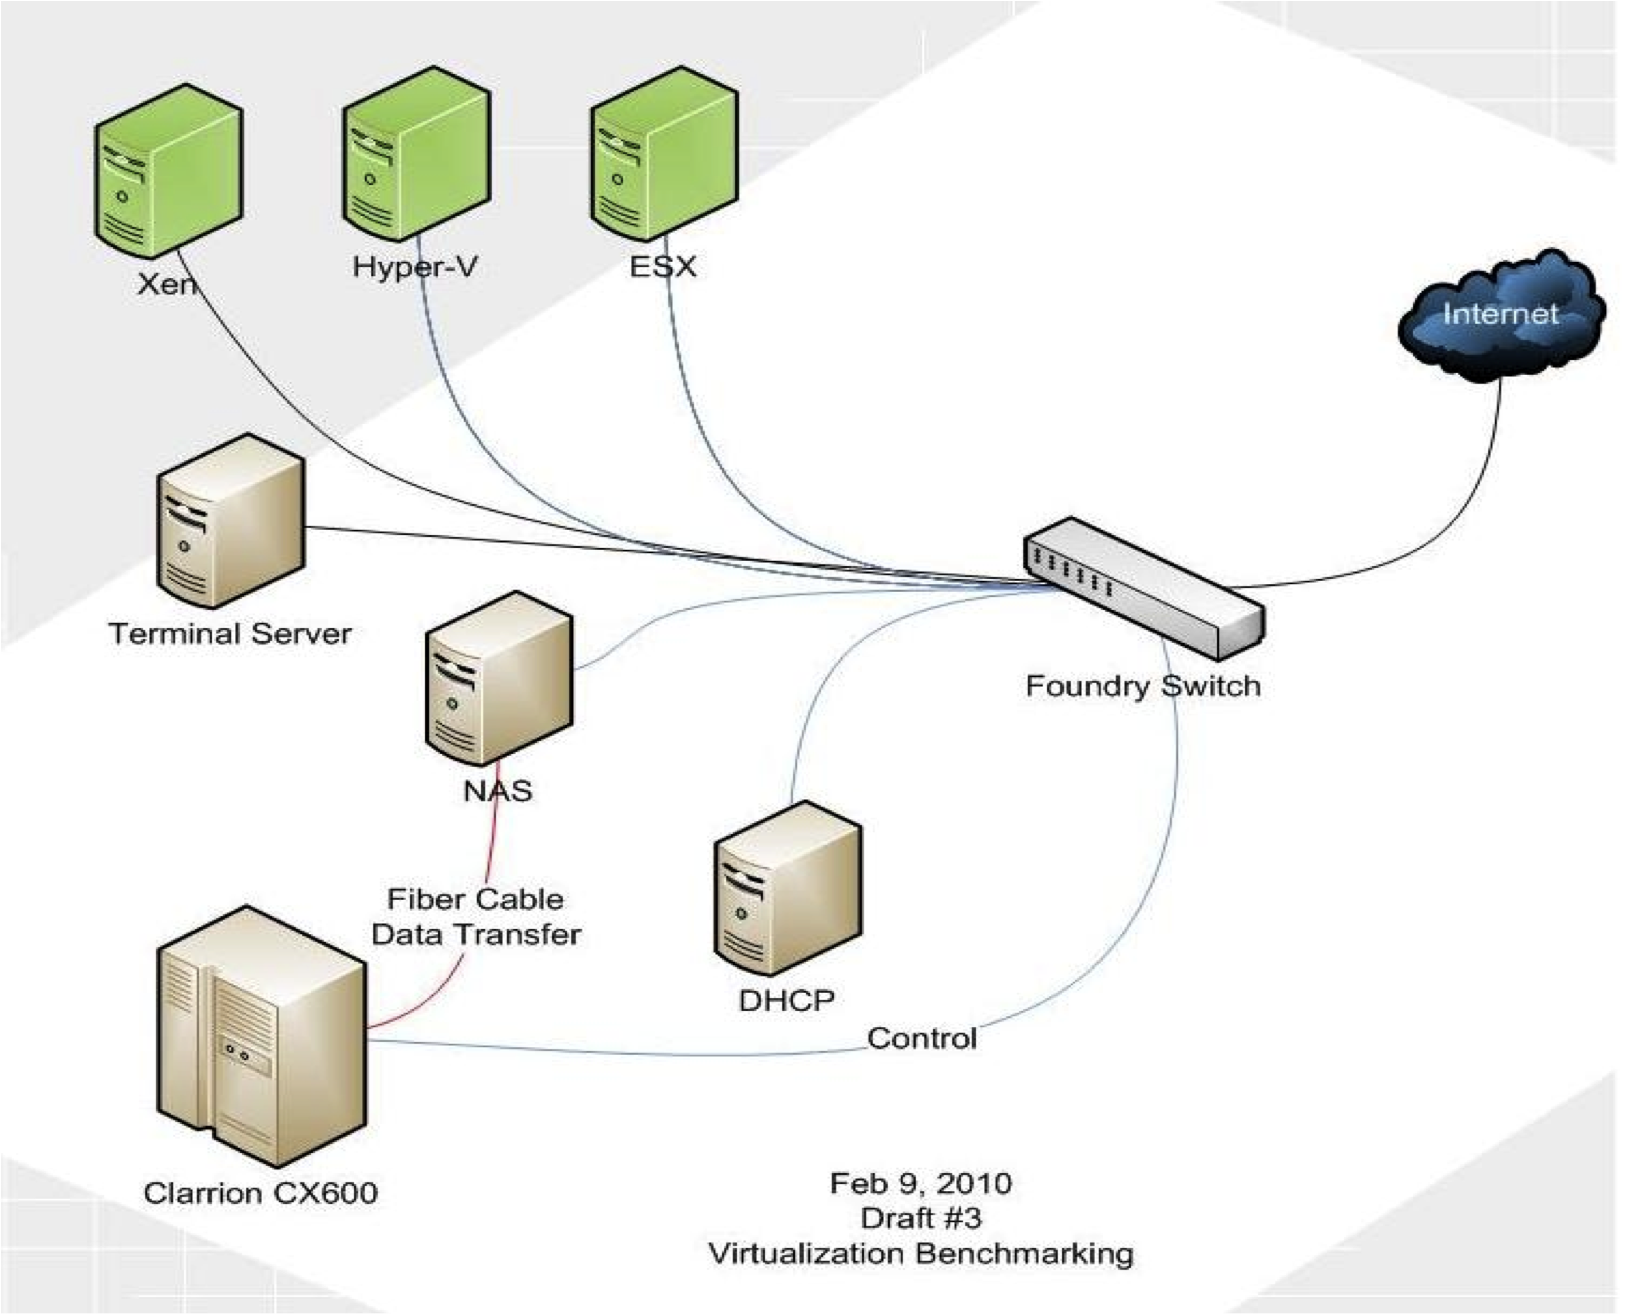 network diagrams citrix network diagram virtualization network diagrams citrix network diagram virtualization benchmarking